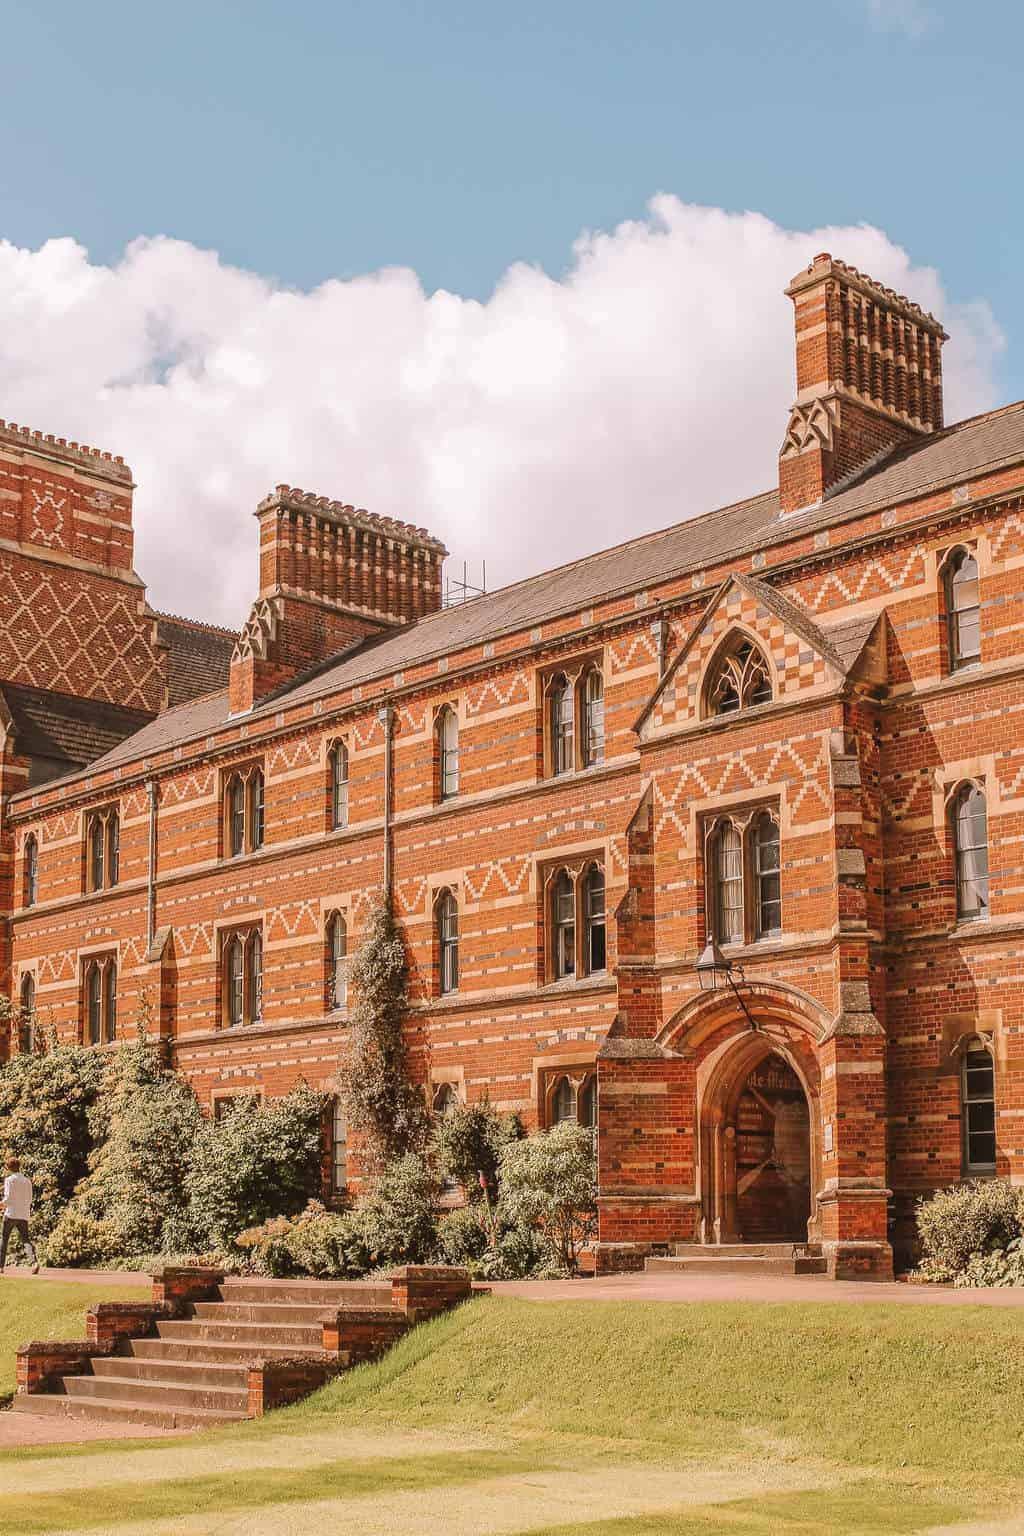 Keble College - 10 Most Beautiful Colleges at Oxford University According to a Student